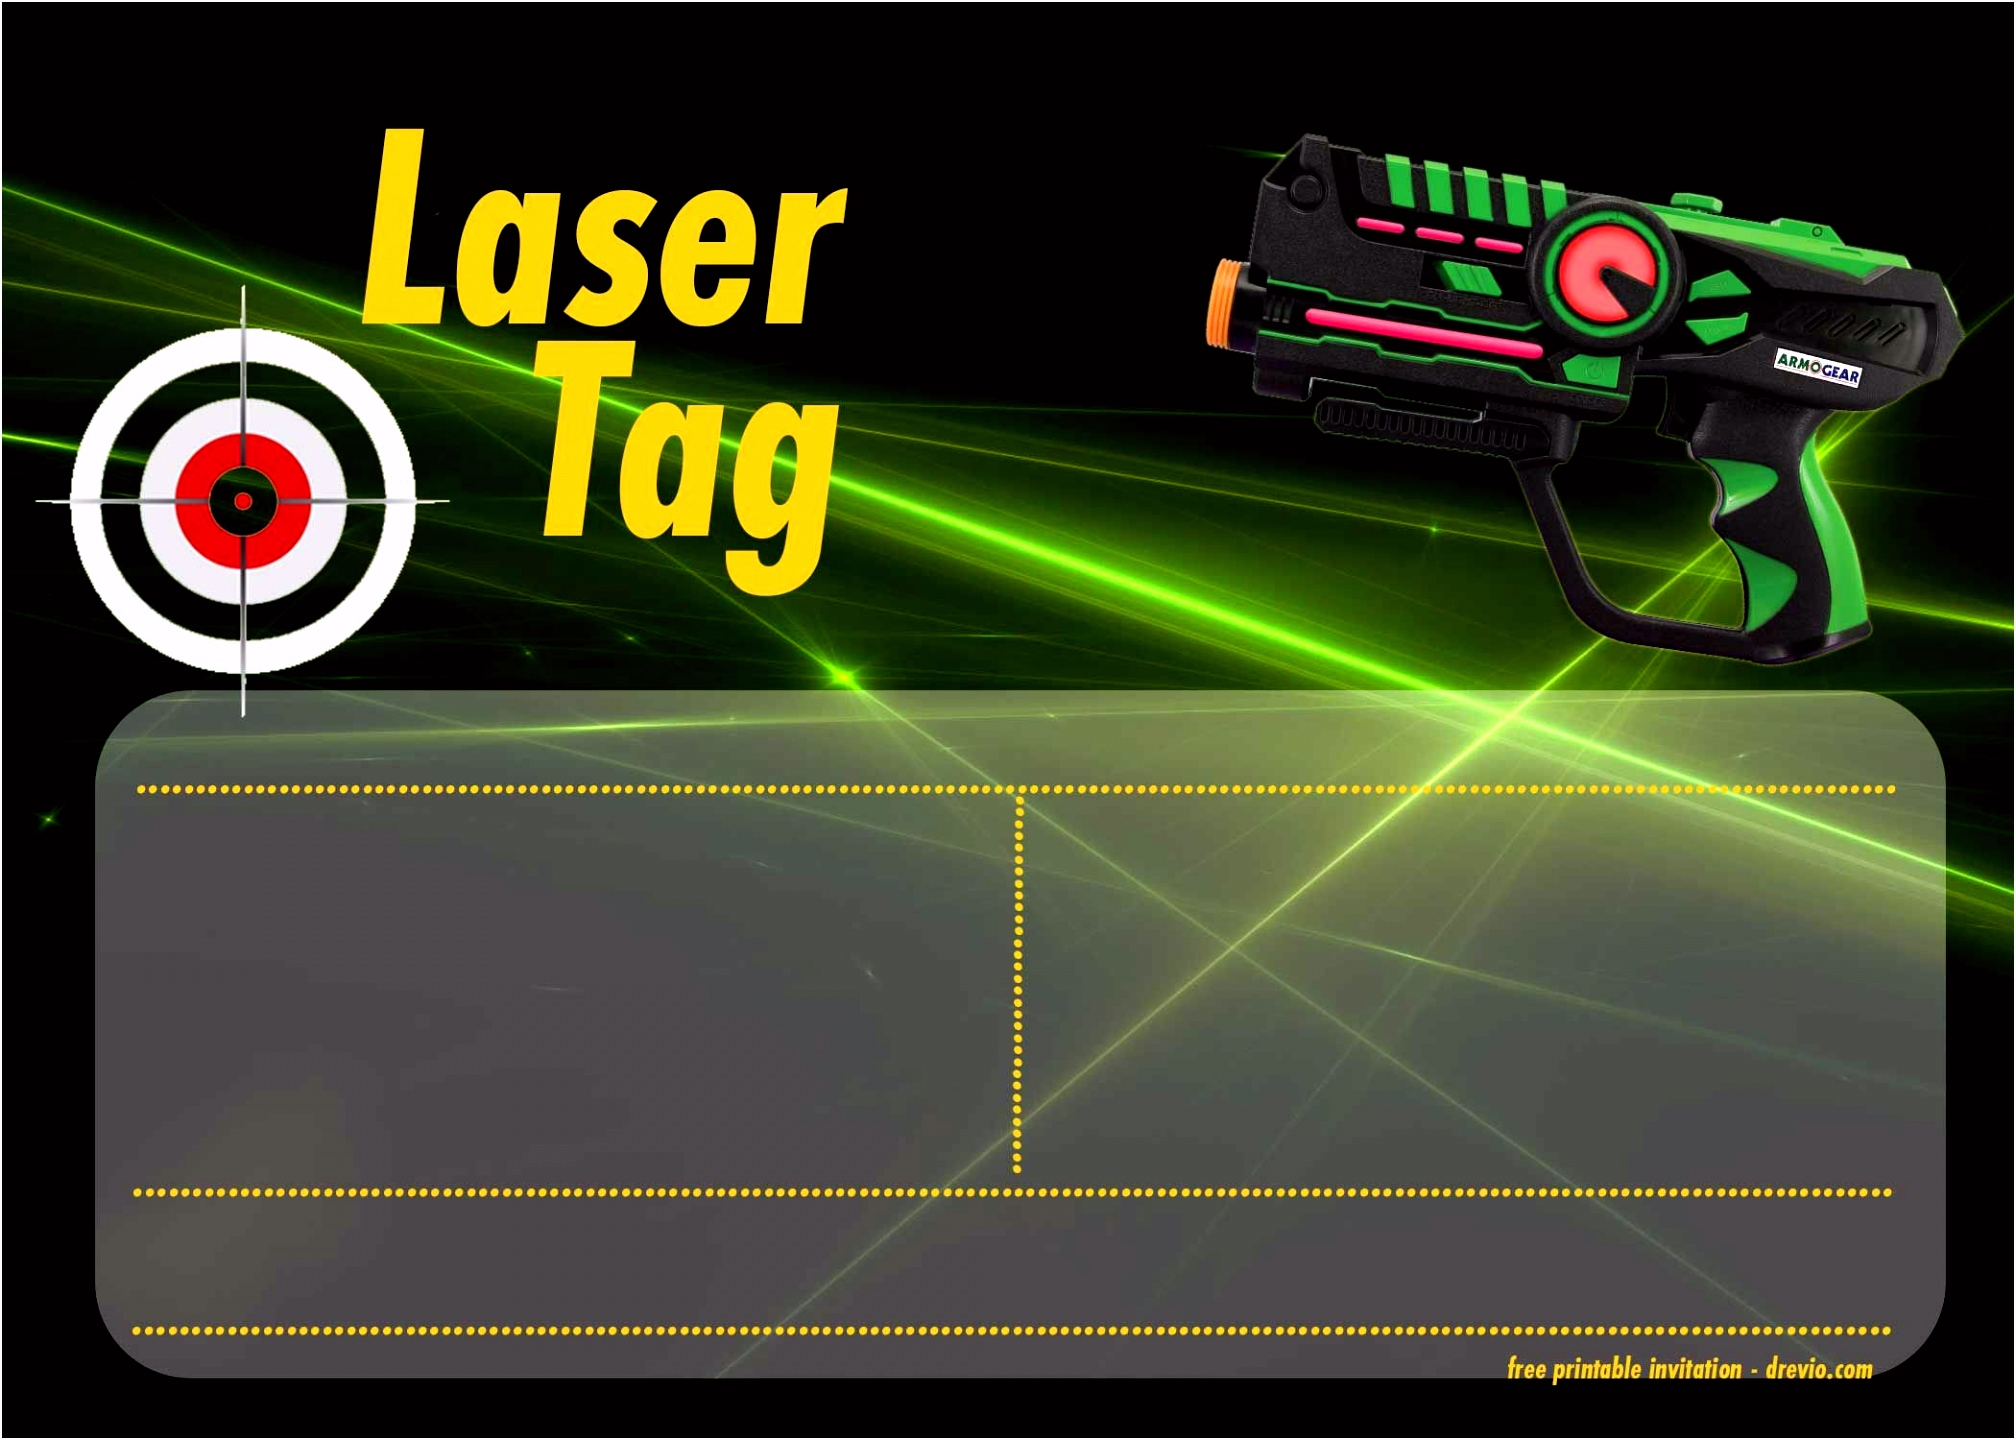 Vorlage Einladung Lasertag Free Printable Laser Tag Invitation Boys Party Ideas T9nj84afh3 Tvjsu4cpqh